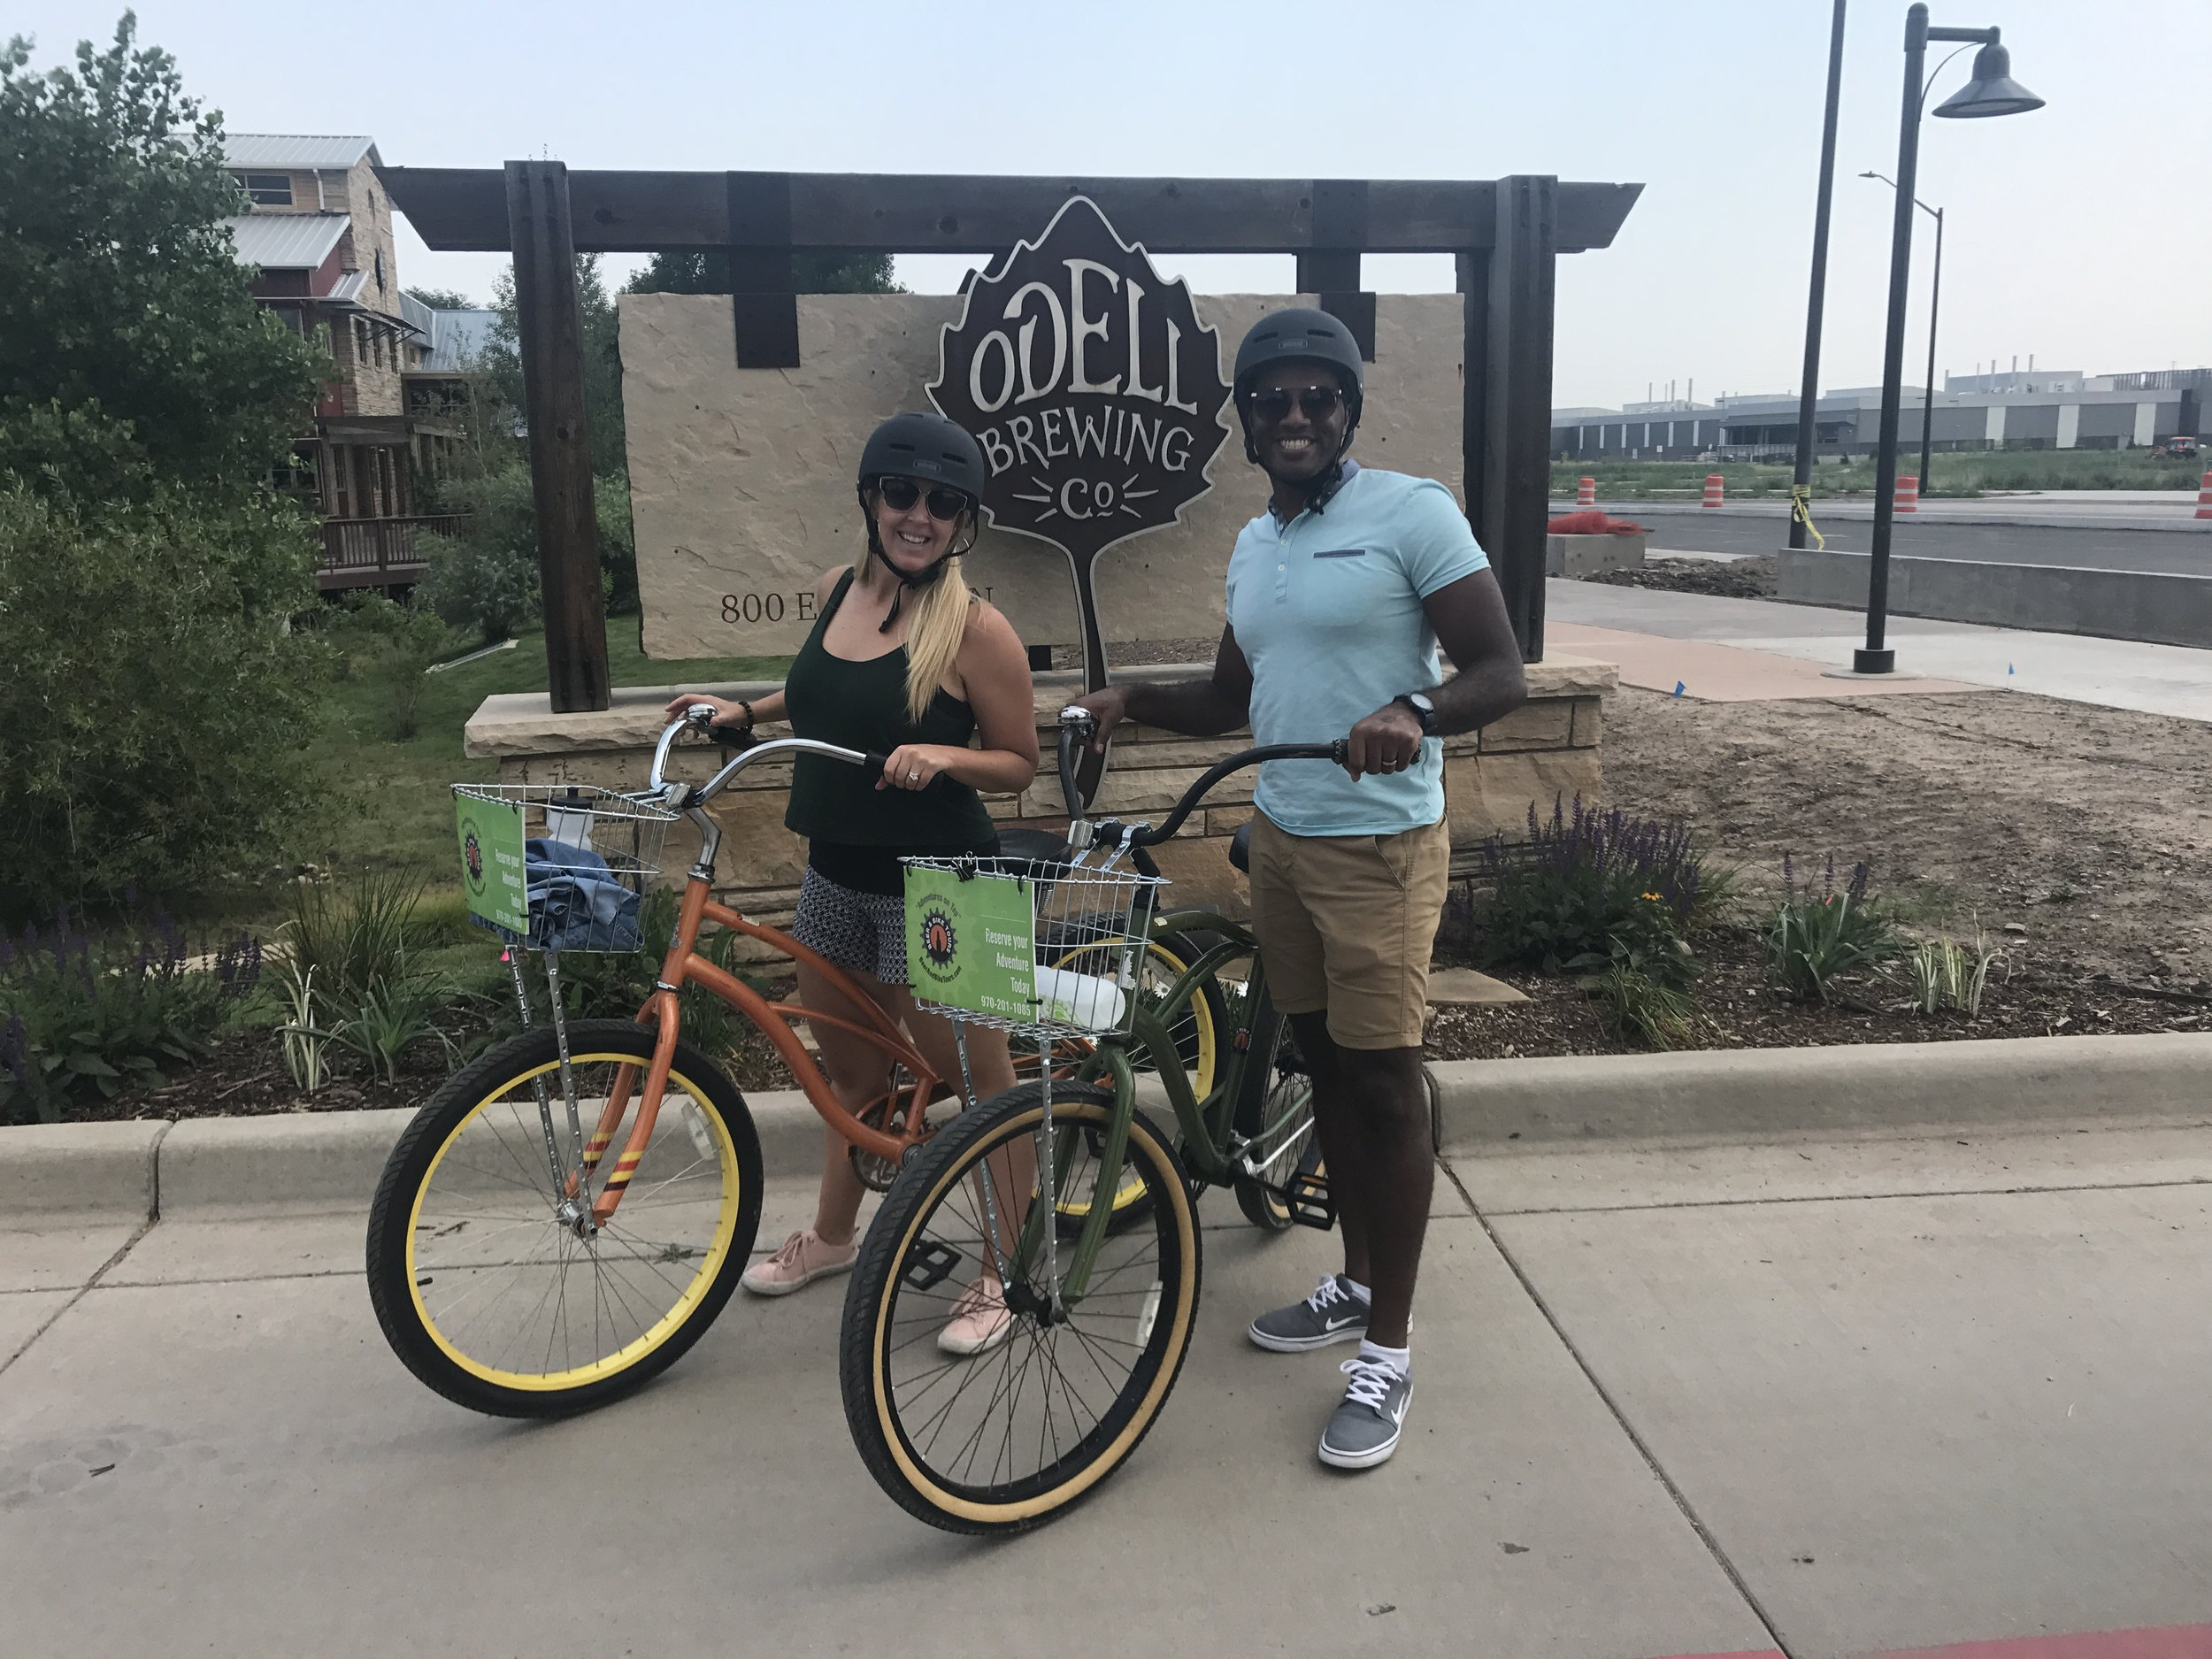 Photo: Bob Williams and/or Beer & Bike Tours